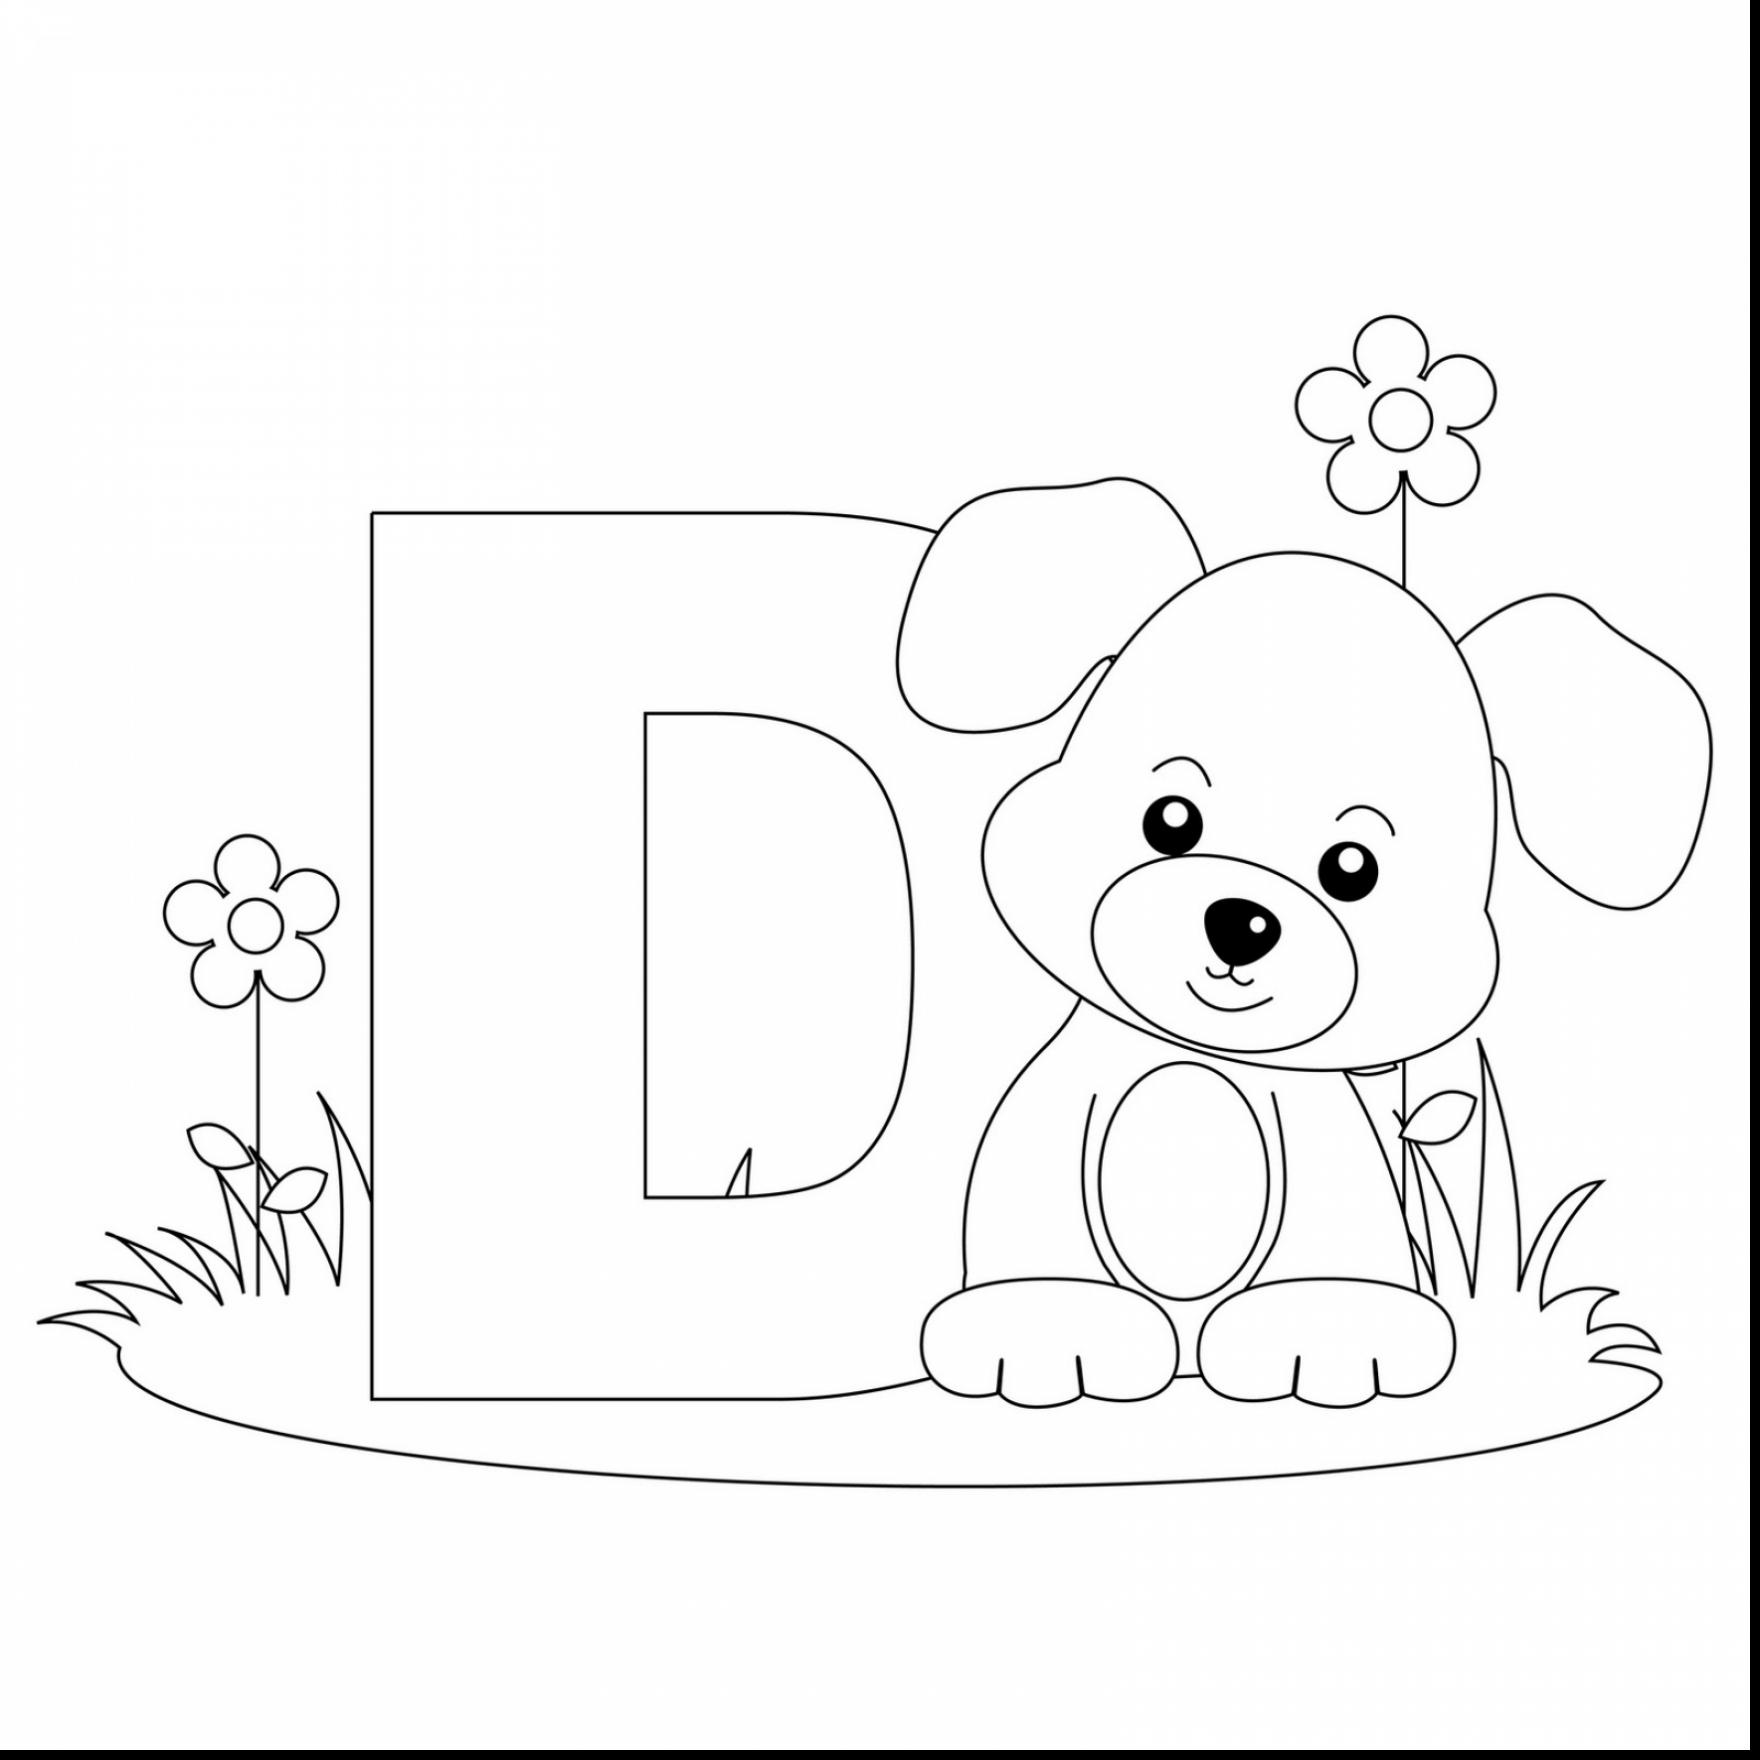 Letter D Coloring Pages Preschool At Getdrawings